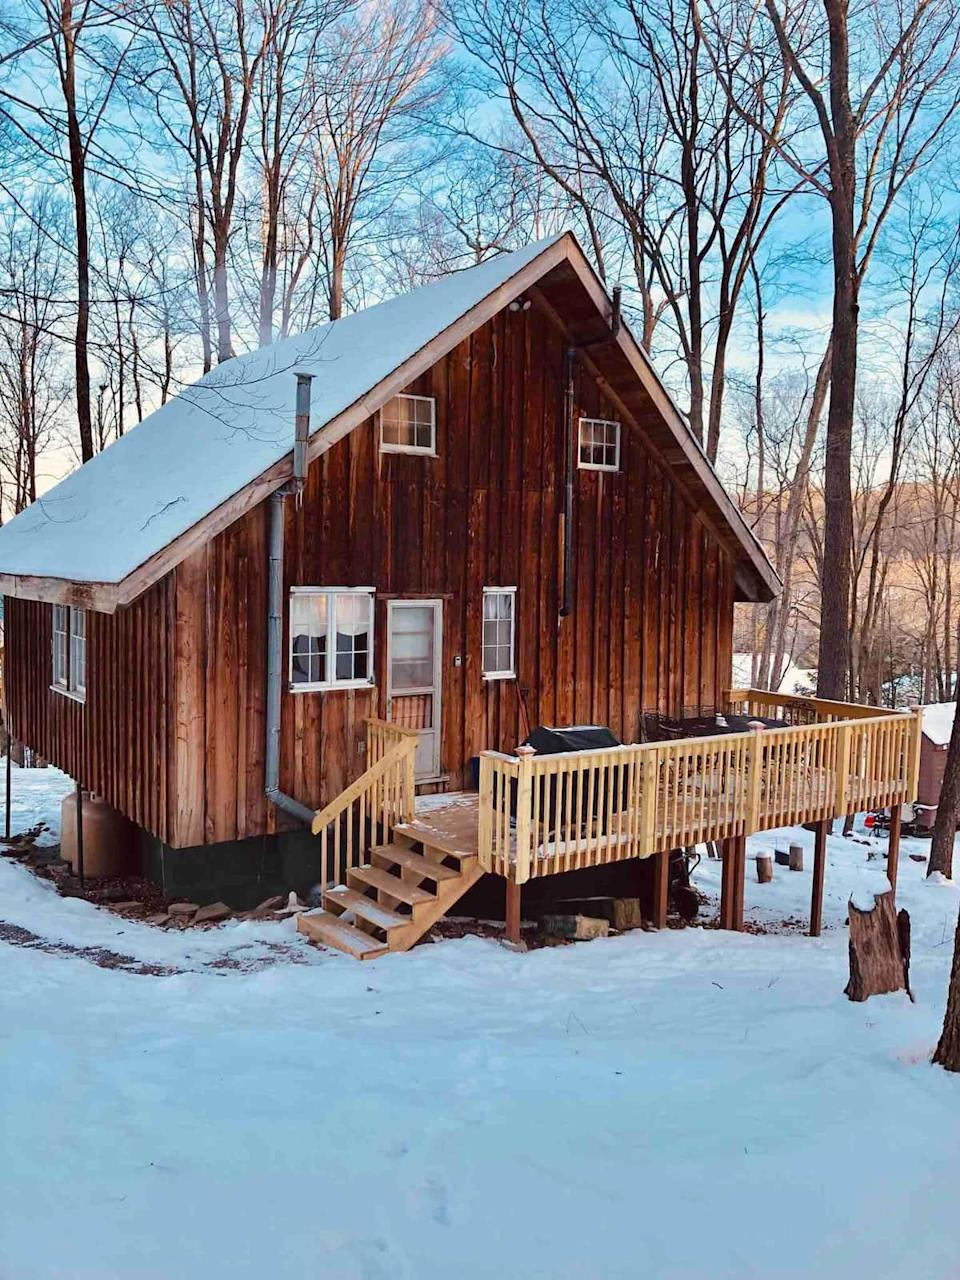 """<h2>Pocono Mountain, Pennsylvania</h2><br><strong>Location: </strong>Greentown, Pennsylvania<br><strong>Sleeps: </strong>6<br><strong>Price Per Night:</strong> <a href=""""http://airbnb.pvxt.net/qnne5O"""" rel=""""nofollow noopener"""" target=""""_blank"""" data-ylk=""""slk:$205"""" class=""""link rapid-noclick-resp"""">$205</a><br><br>""""There is a fireplace, a fire pit, three decks, and plenty of outdoor space. The whole cottage has been updated and the cedar wood floors just refinished. A very unique floor to say the least, please see the pictures!! There is a gas grill and picnic table on the back porch. The two front porches have seating areas. Transient boat slips are available right across the street at Light House Marina as well as rentals for every kind of water sport. There is a public beach a short drive north on Rt 507. Not in a community with a bunch of ridiculous rules!!!"""" <br><br><h3>Book <a href=""""http://airbnb.pvxt.net/qnne5O"""" rel=""""nofollow noopener"""" target=""""_blank"""" data-ylk=""""slk:Pocono Mountain Escape Authentic Lakeside Cottage"""" class=""""link rapid-noclick-resp"""">Pocono Mountain Escape Authentic Lakeside Cottage</a><br></h3>"""